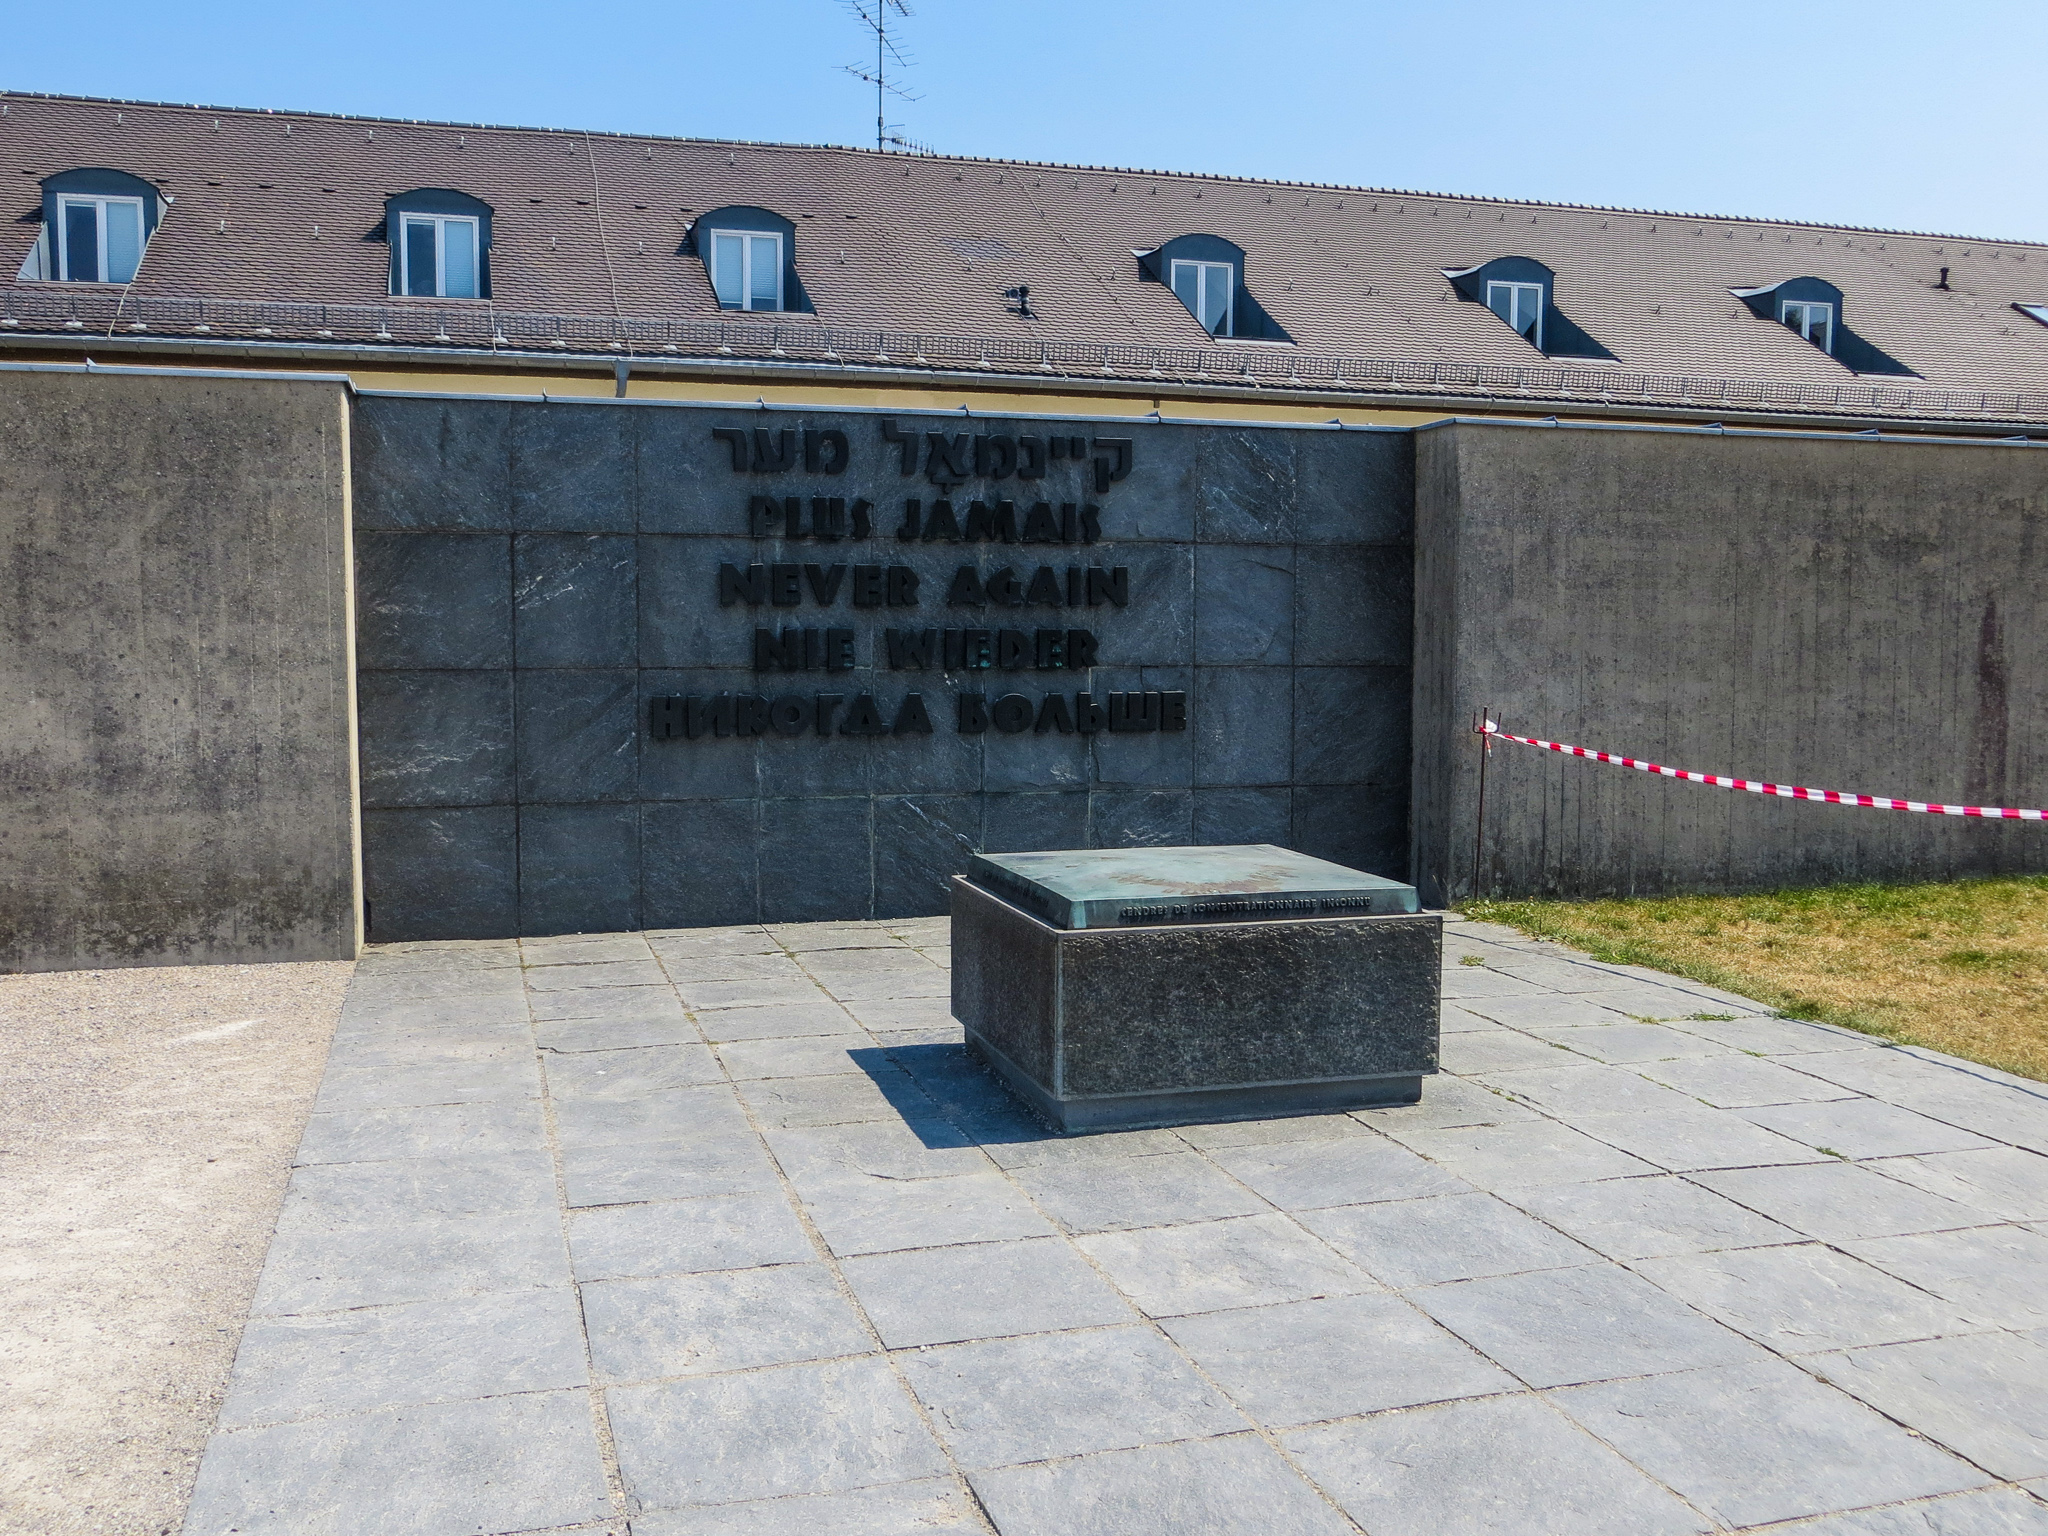 never again memorial at dachau: on a dachau visit from munich, change your own life and love others